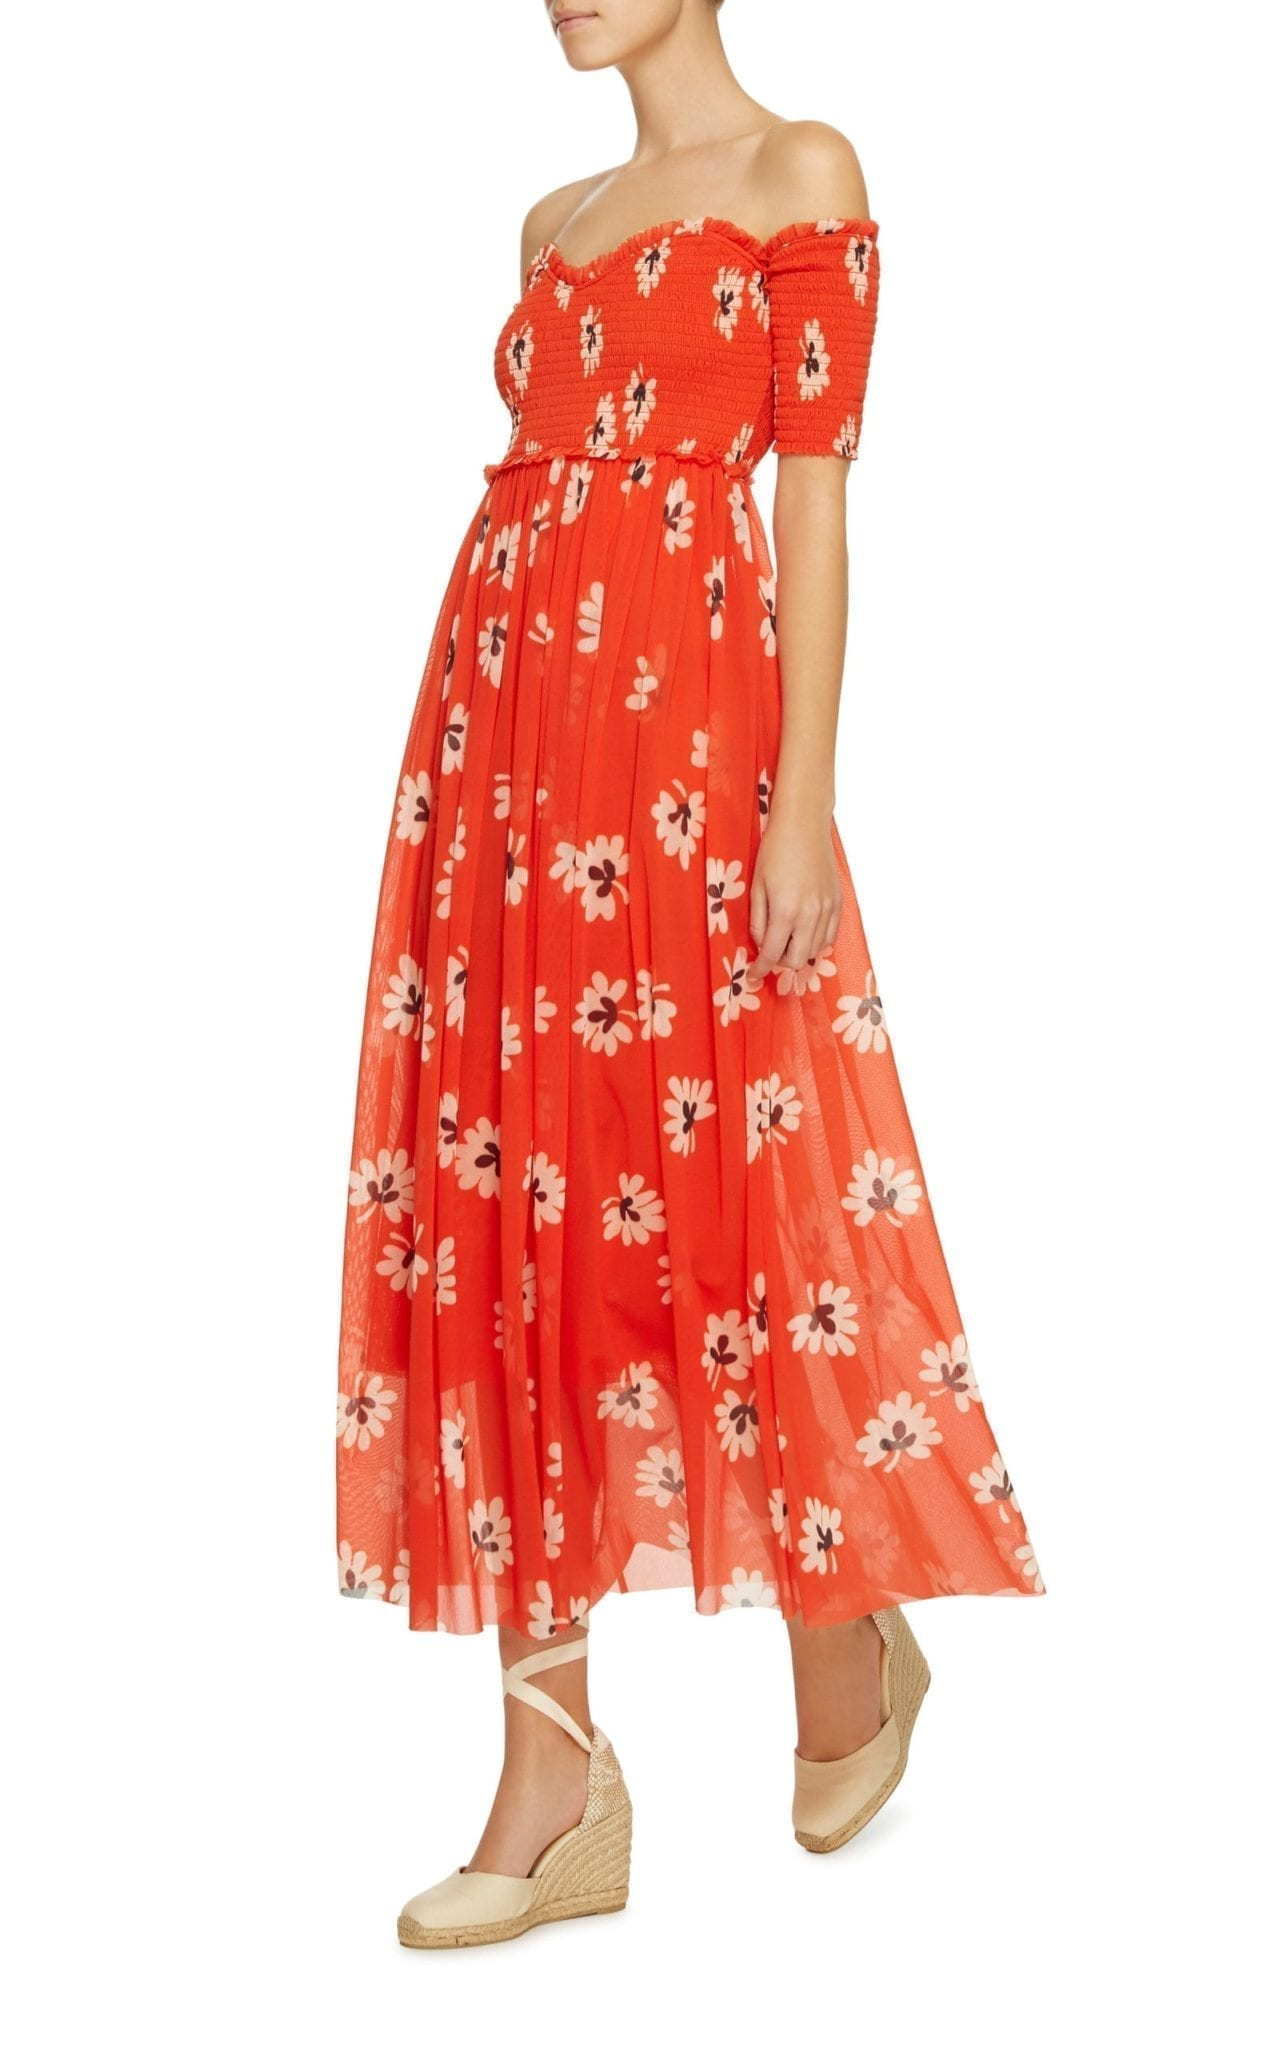 c03c72767b7c GANNI Tilden Off The Shoulder Smocked Midi Red   Floral Printed Dress